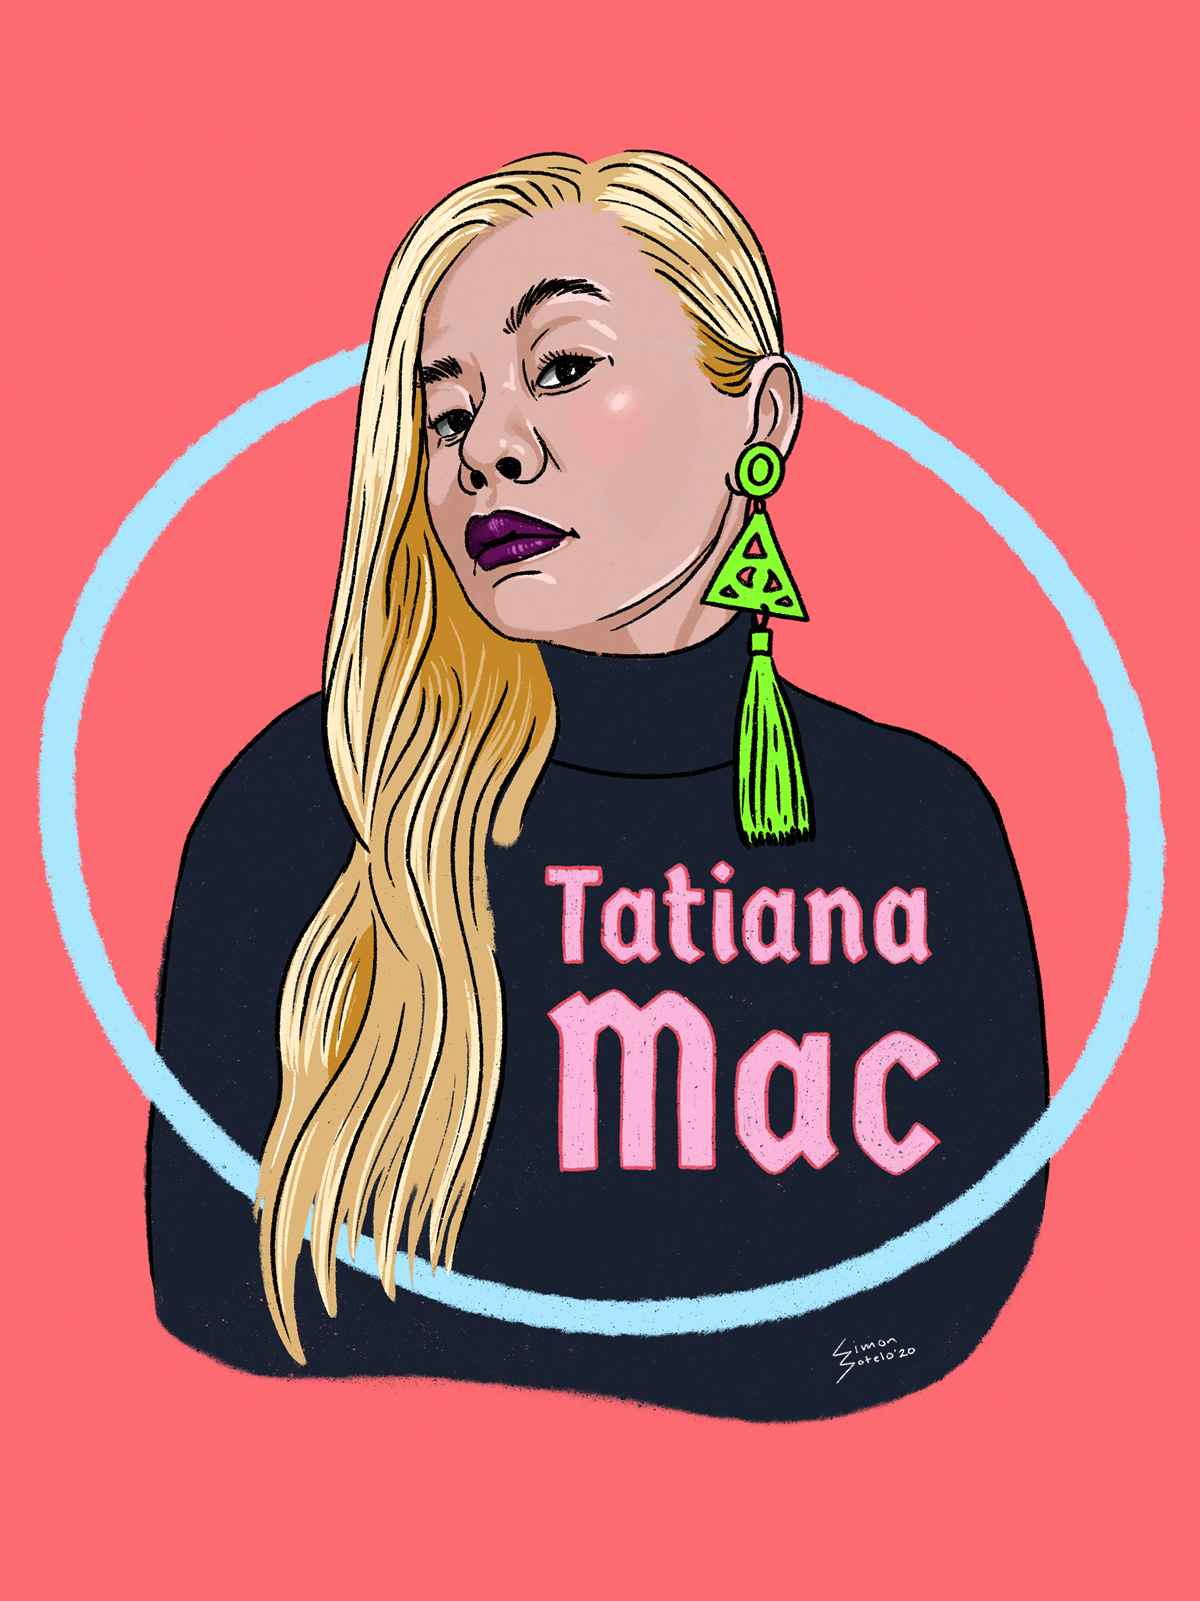 Illustration of Tatiana Mac